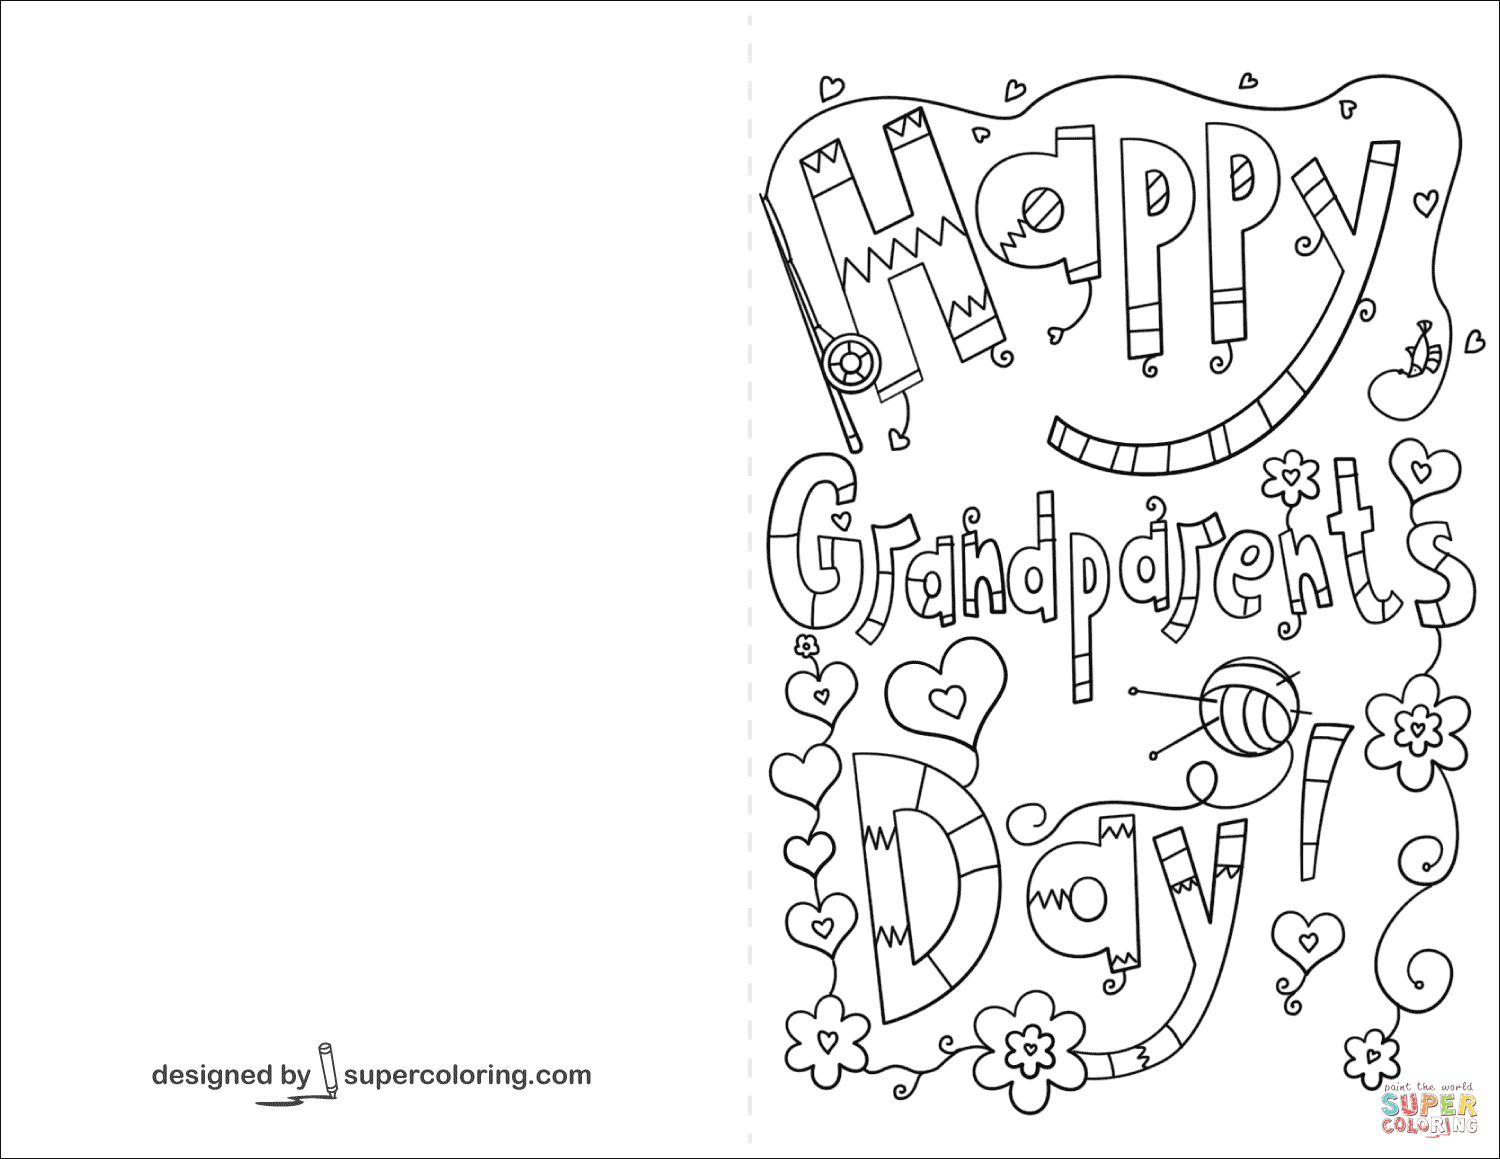 Happy Grandparents Day Doodle Card Coloring Page | Free Printable - Grandparents Day Cards Printable Free